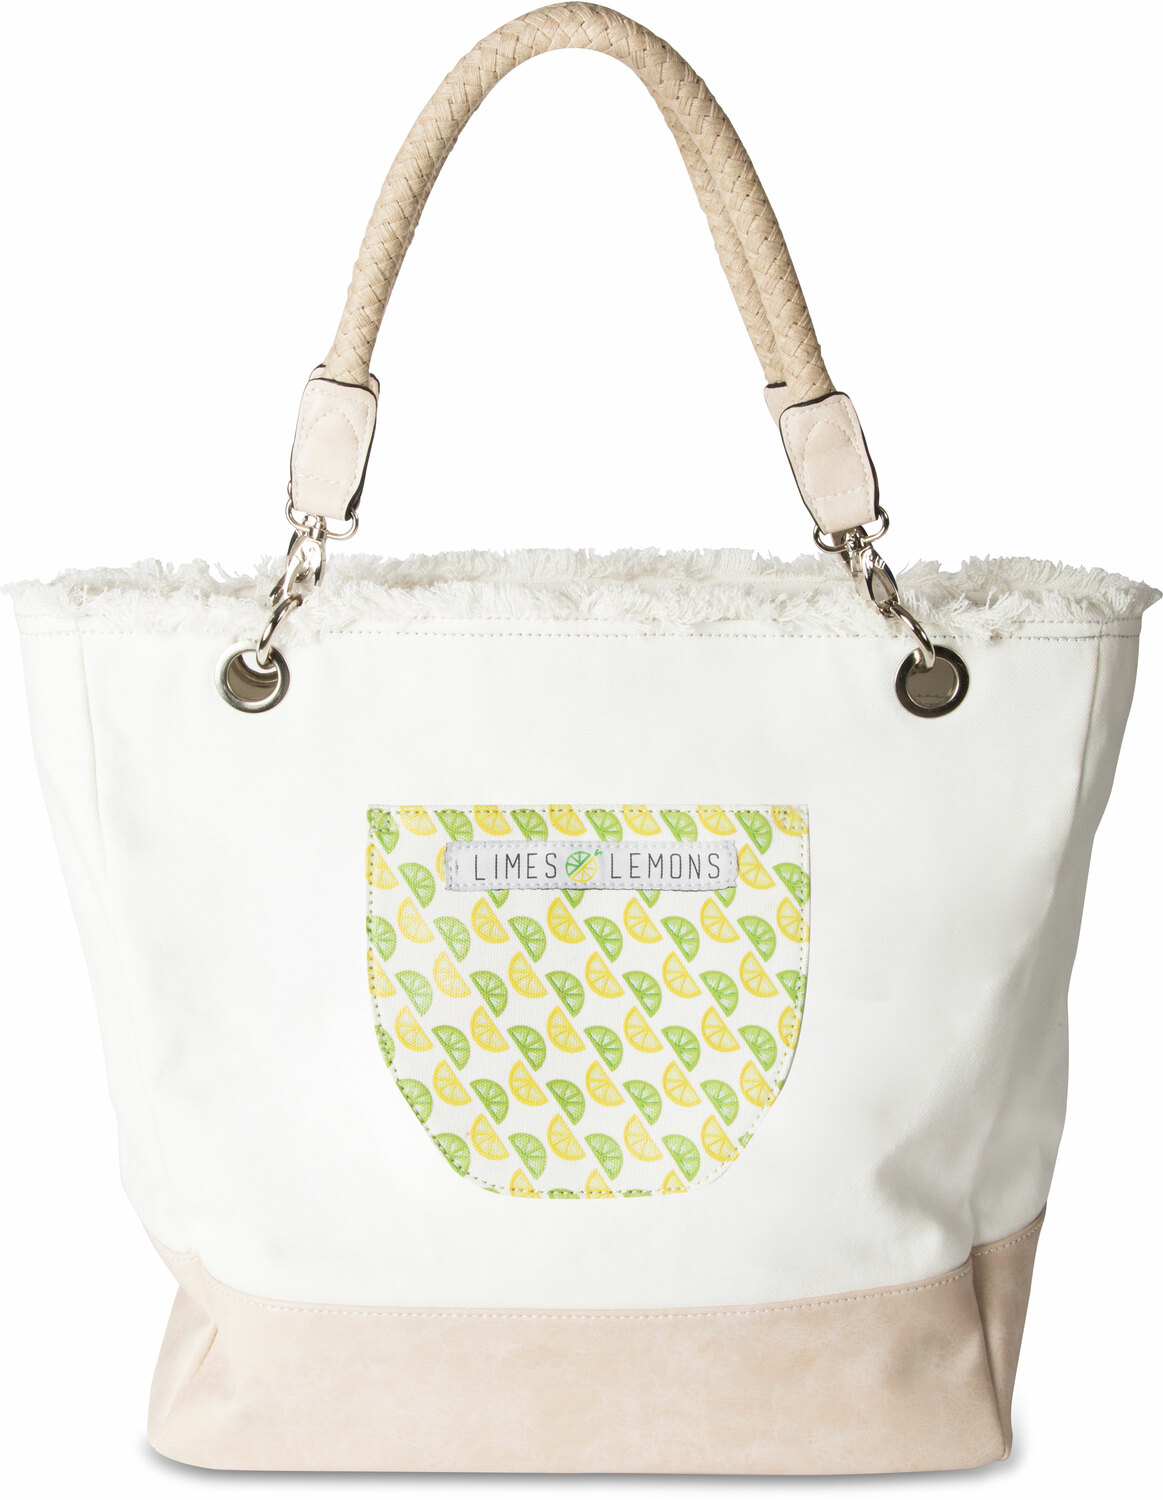 "A-Peel-ing- White by Livin' on the Wedge - A-Peel-ing- White - 18"" x 15"" x 6.75"" Large Canvas Tote Bag"